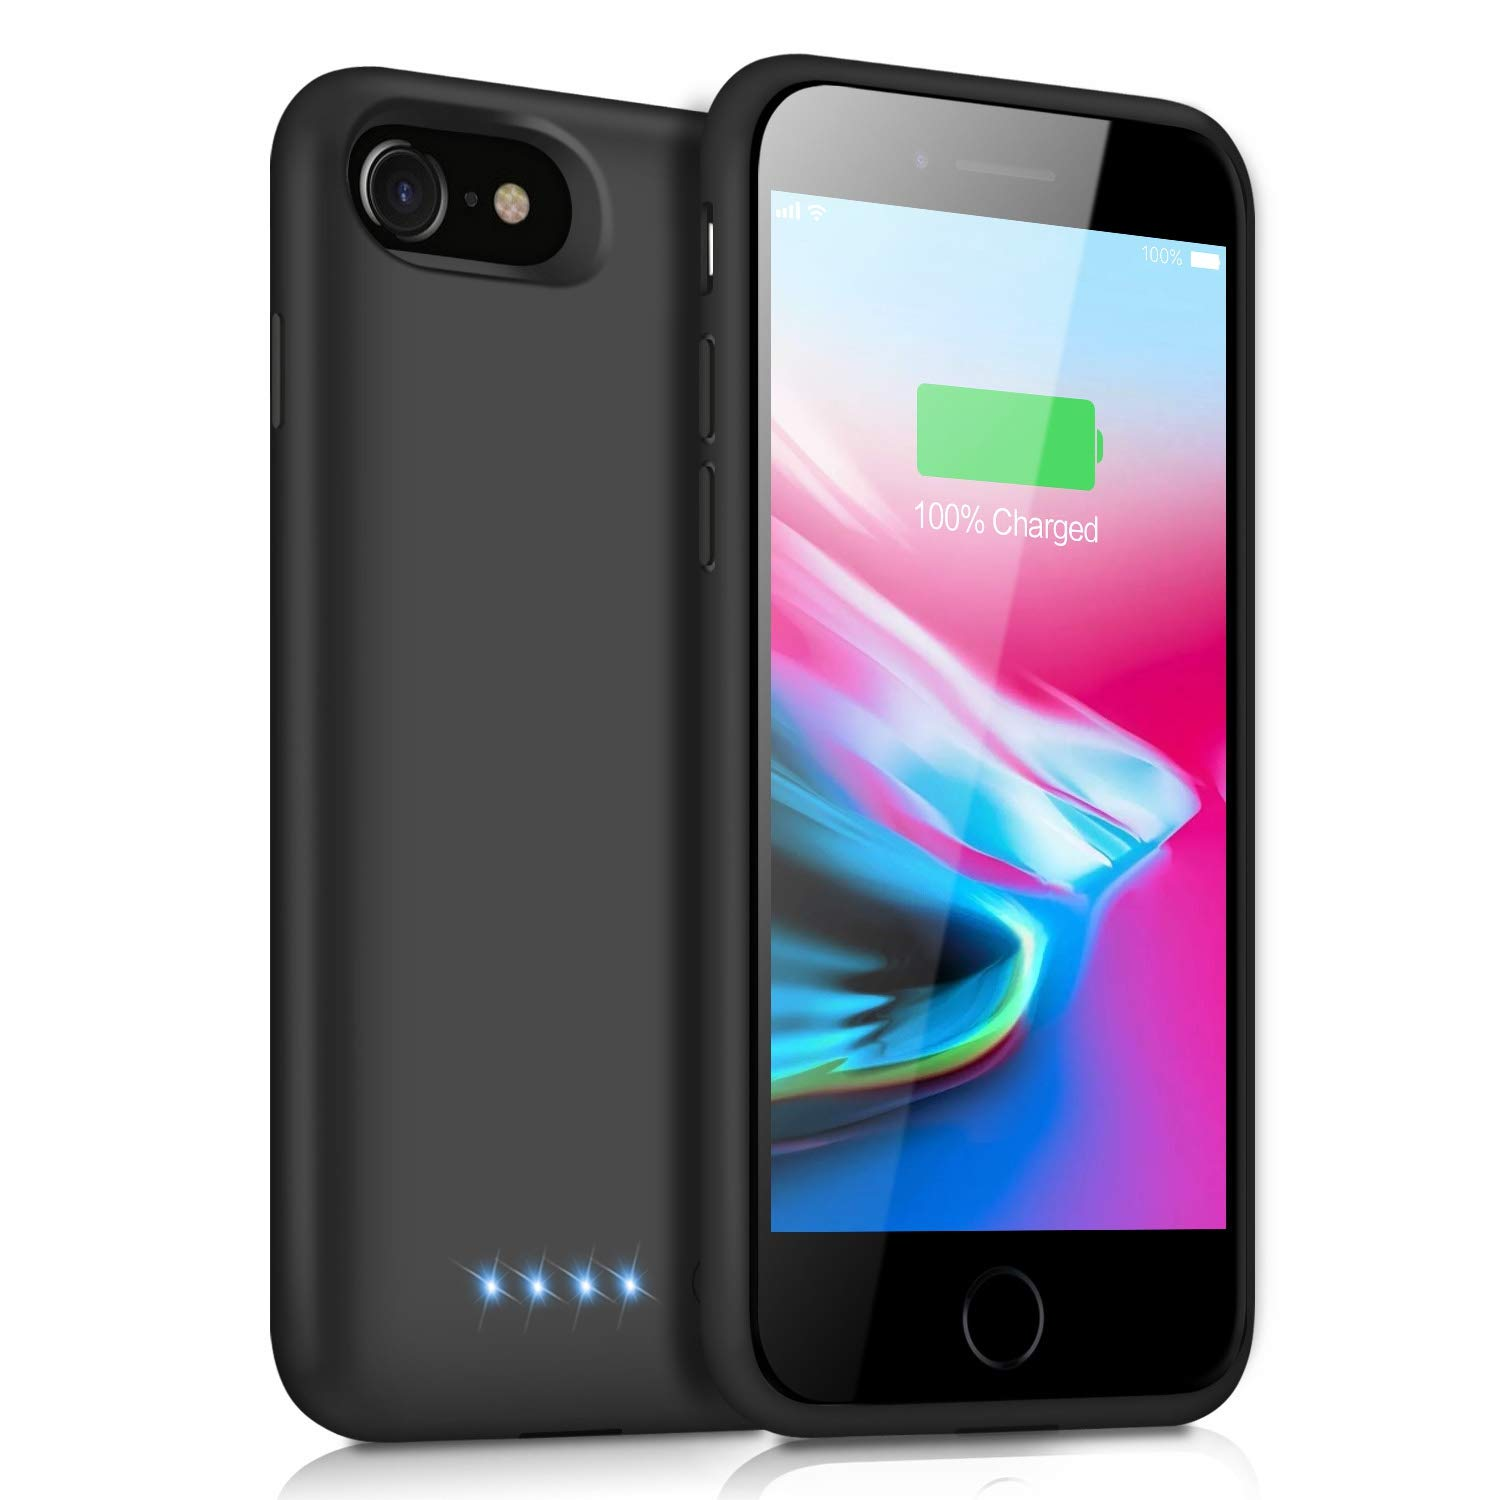 Battery Case for iPhone 8/7 Upgraded 6000mAh Portable Rechargeable Charging Case for iPhone 7 Extended Battery Pack for iPhone 8 Protective Charger Case Backup Cover [4.7 inch ]- Black